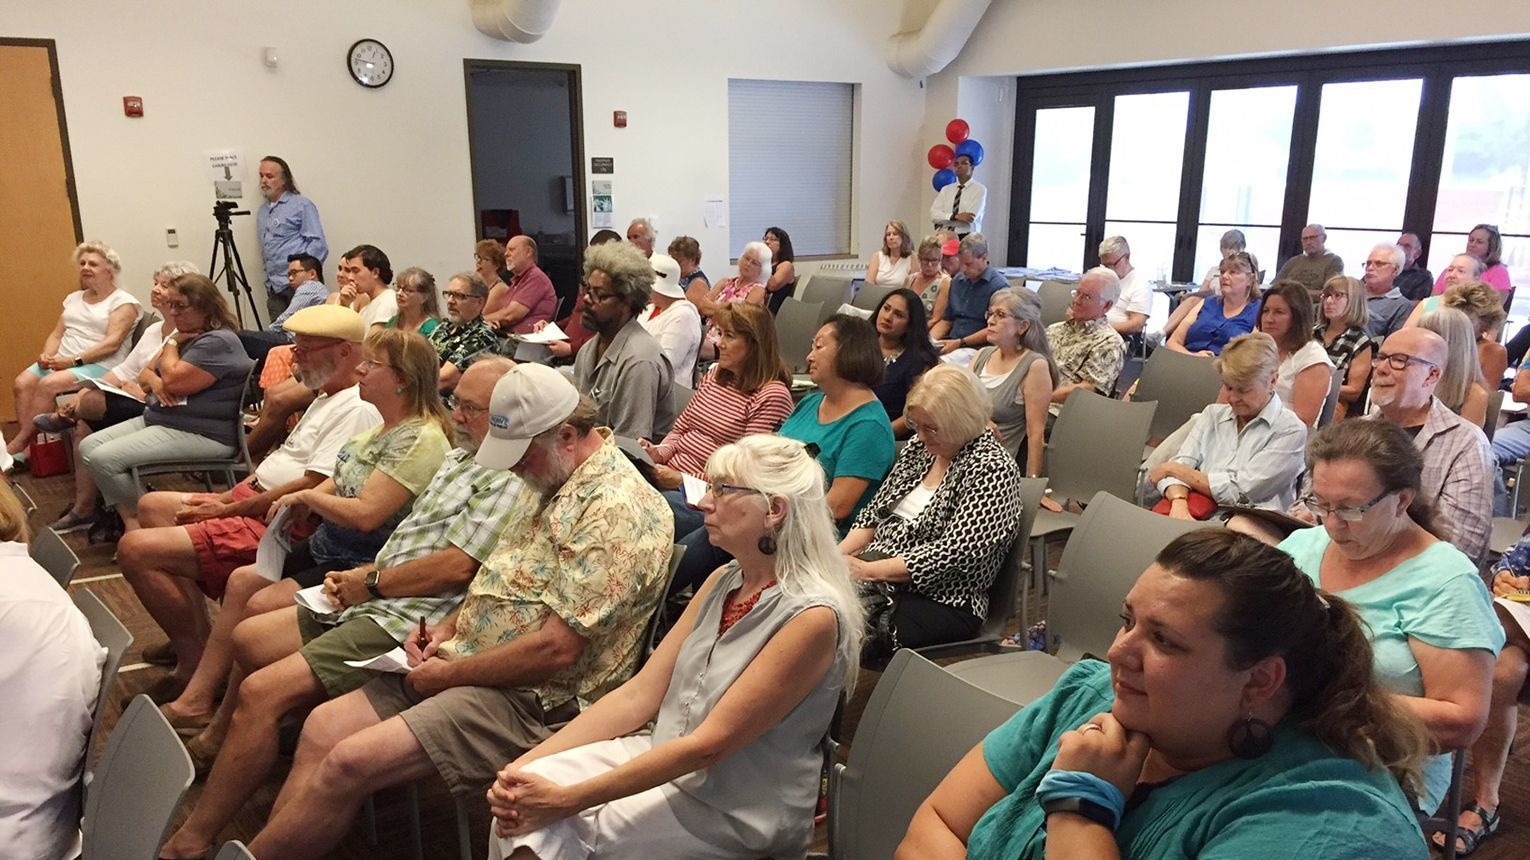 The audience at Indivisible Ramona's forum listens to the congressional candidates answer questions.